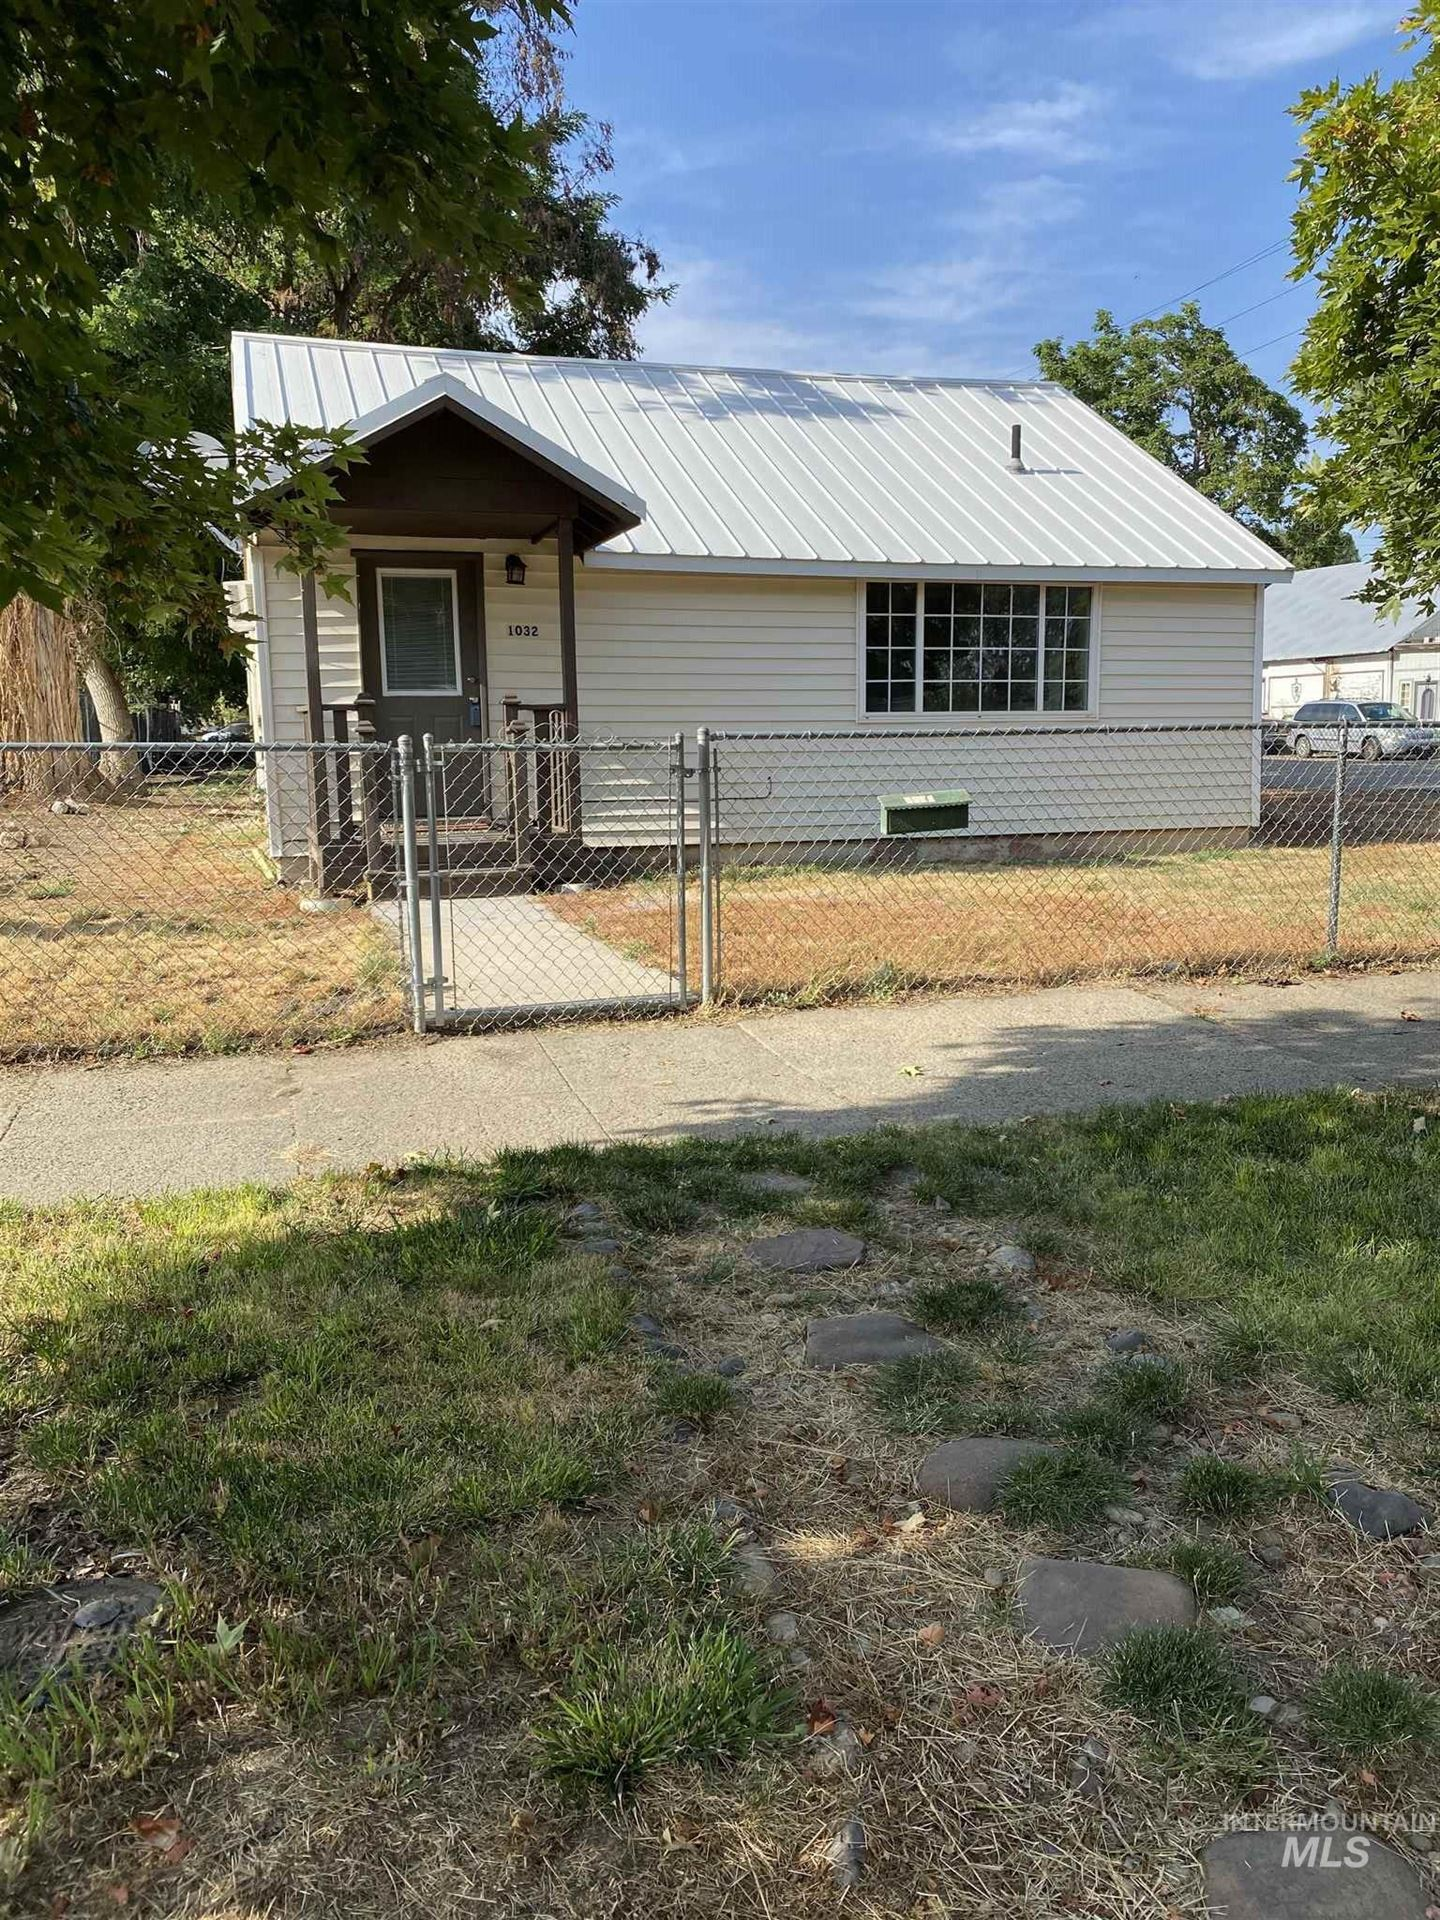 Photo of 1032 E Commercial St., Weiser, ID 83672 (MLS # 98776614)